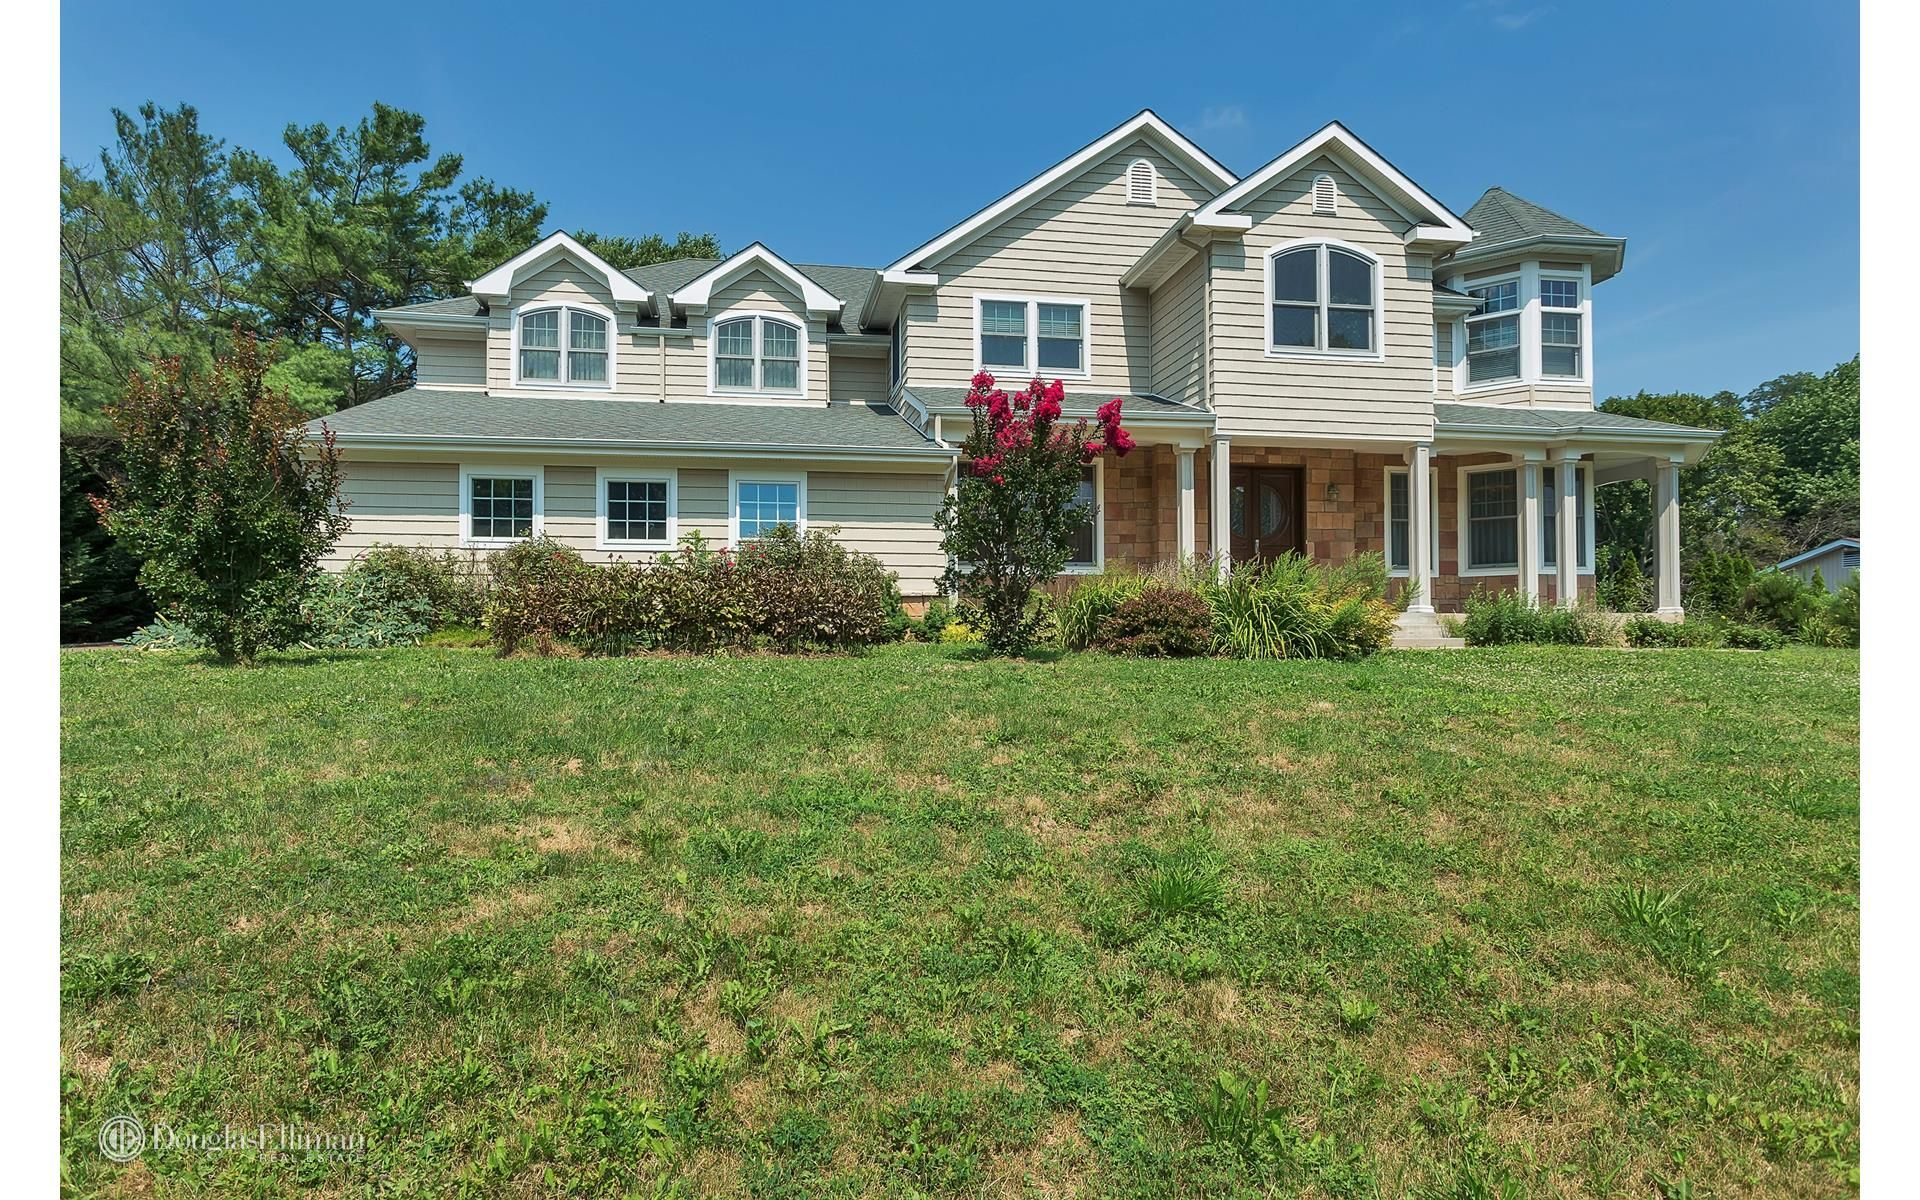 This Can Be A Brand New Image Of Patio Homes for Sale Grand island Ny